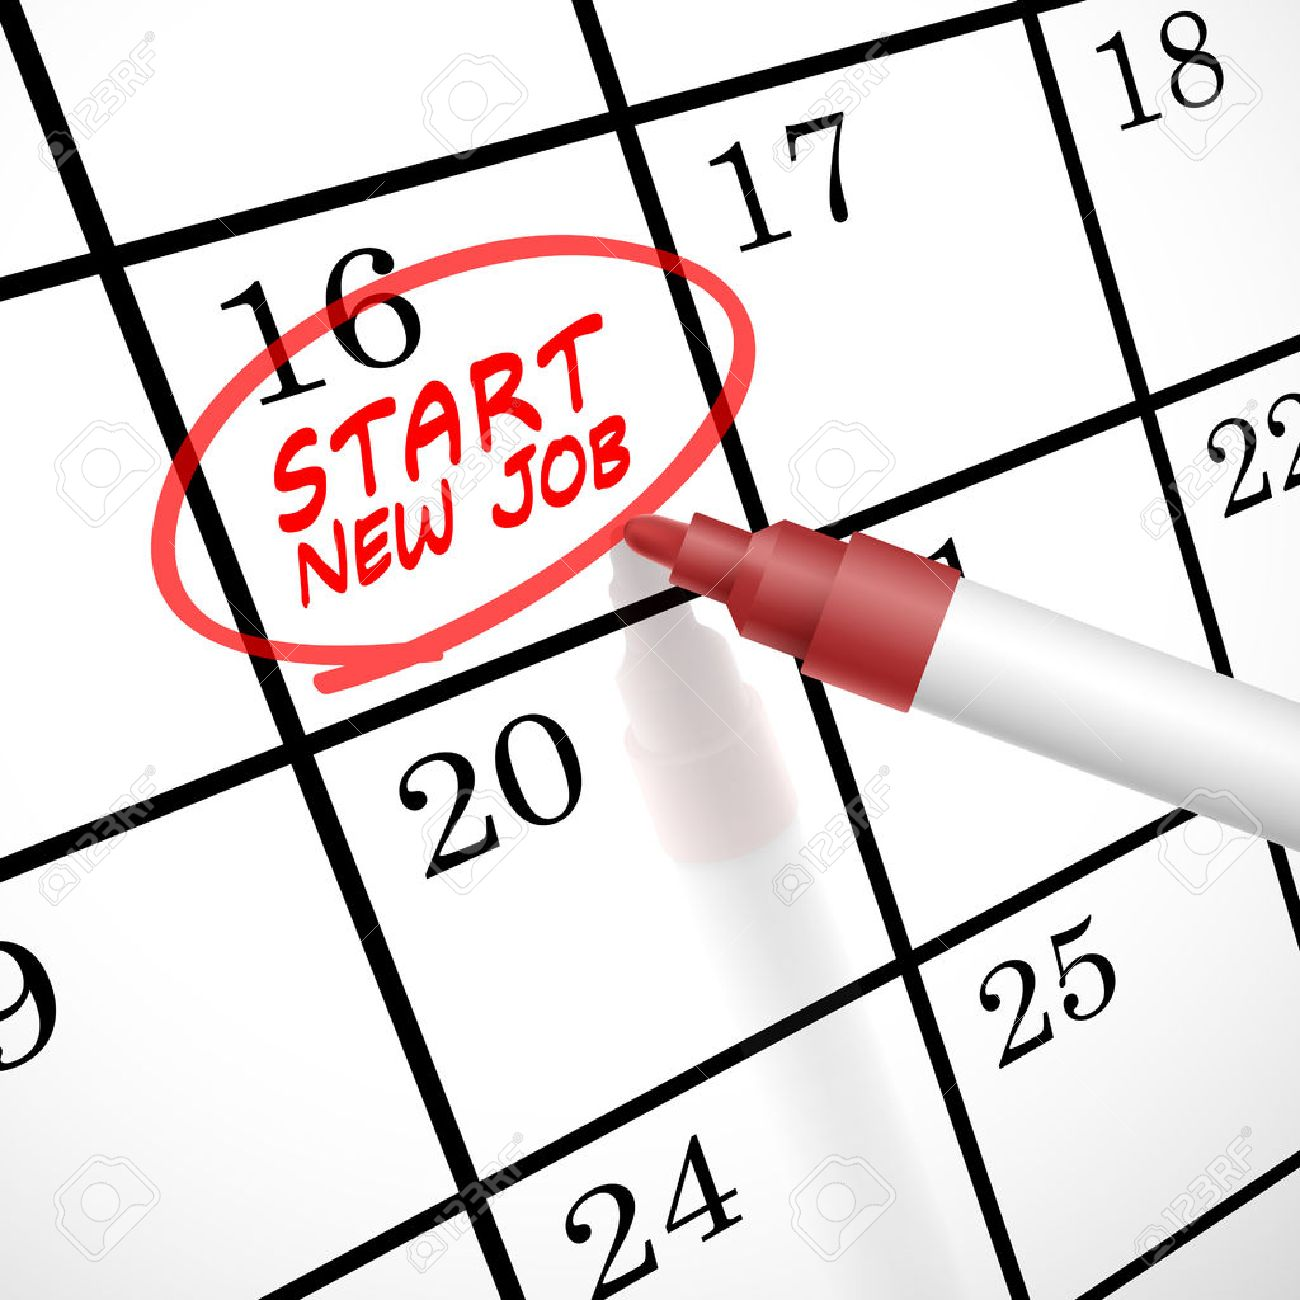 start new job words circle marked on a calendar by a red pen vector start new job words circle marked on a calendar by a red pen